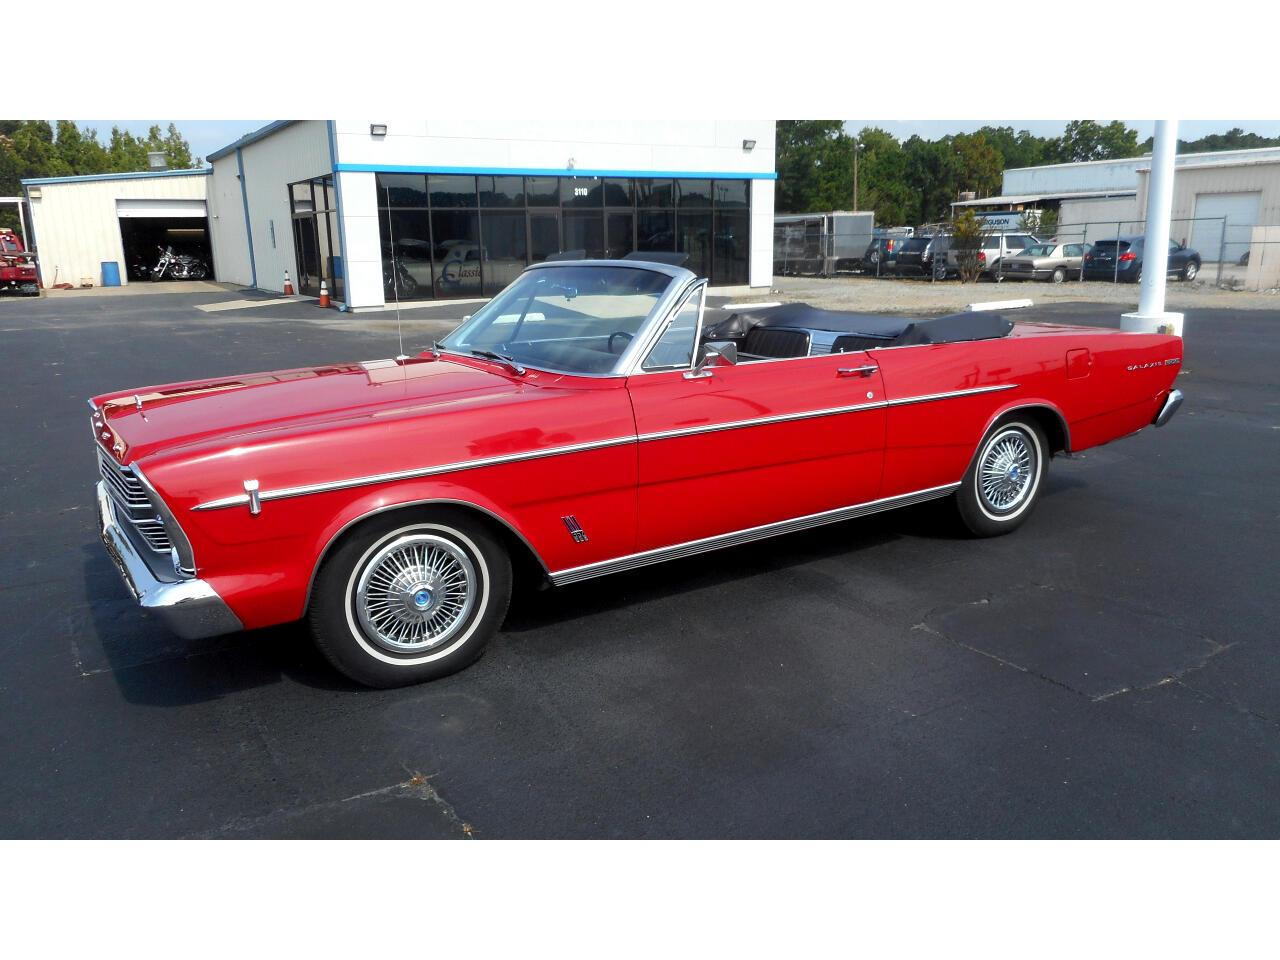 1966 Ford Galaxie 500 (CC-1361365) for sale in Greenville, North Carolina